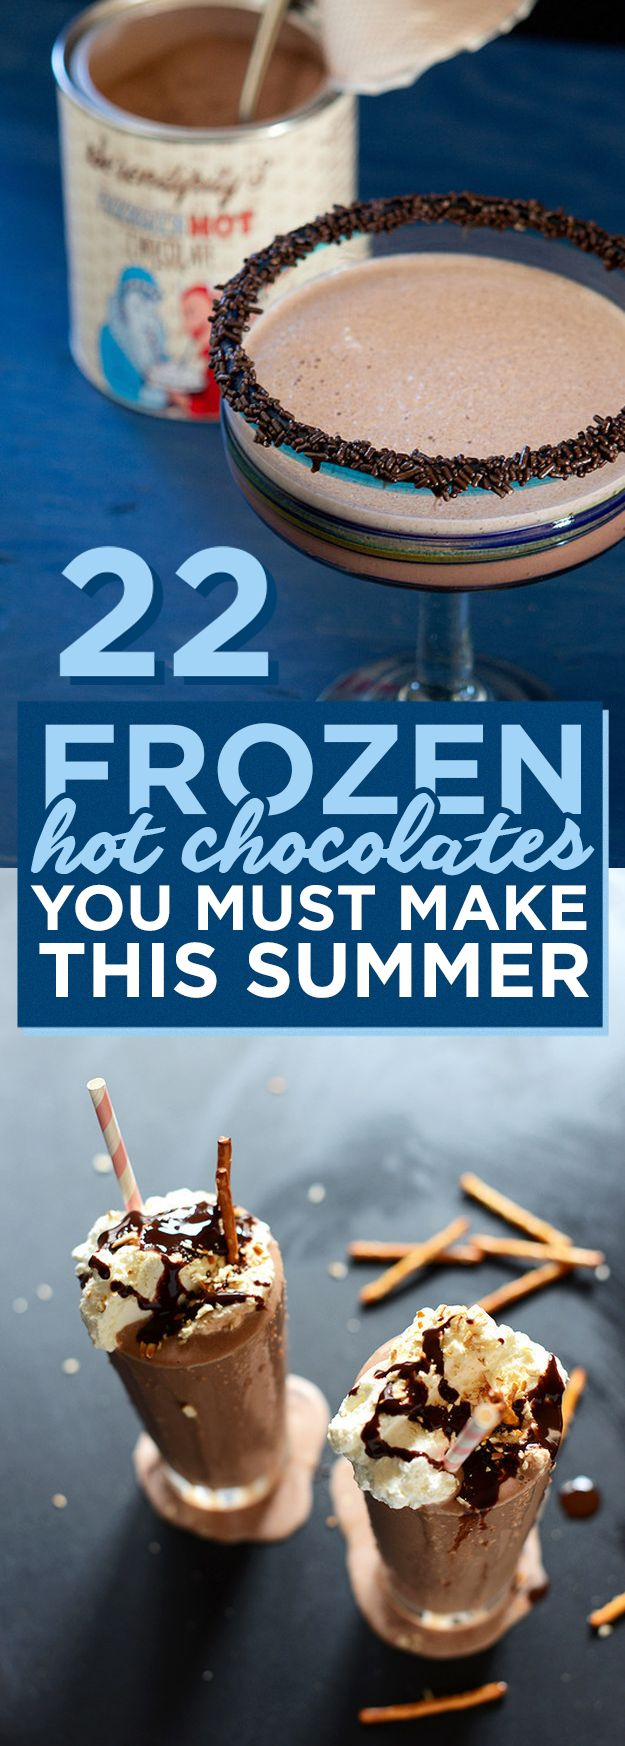 Making hot chocolate for a crowd - 22 Frozen Hot Chocolate You Must Make This Summer